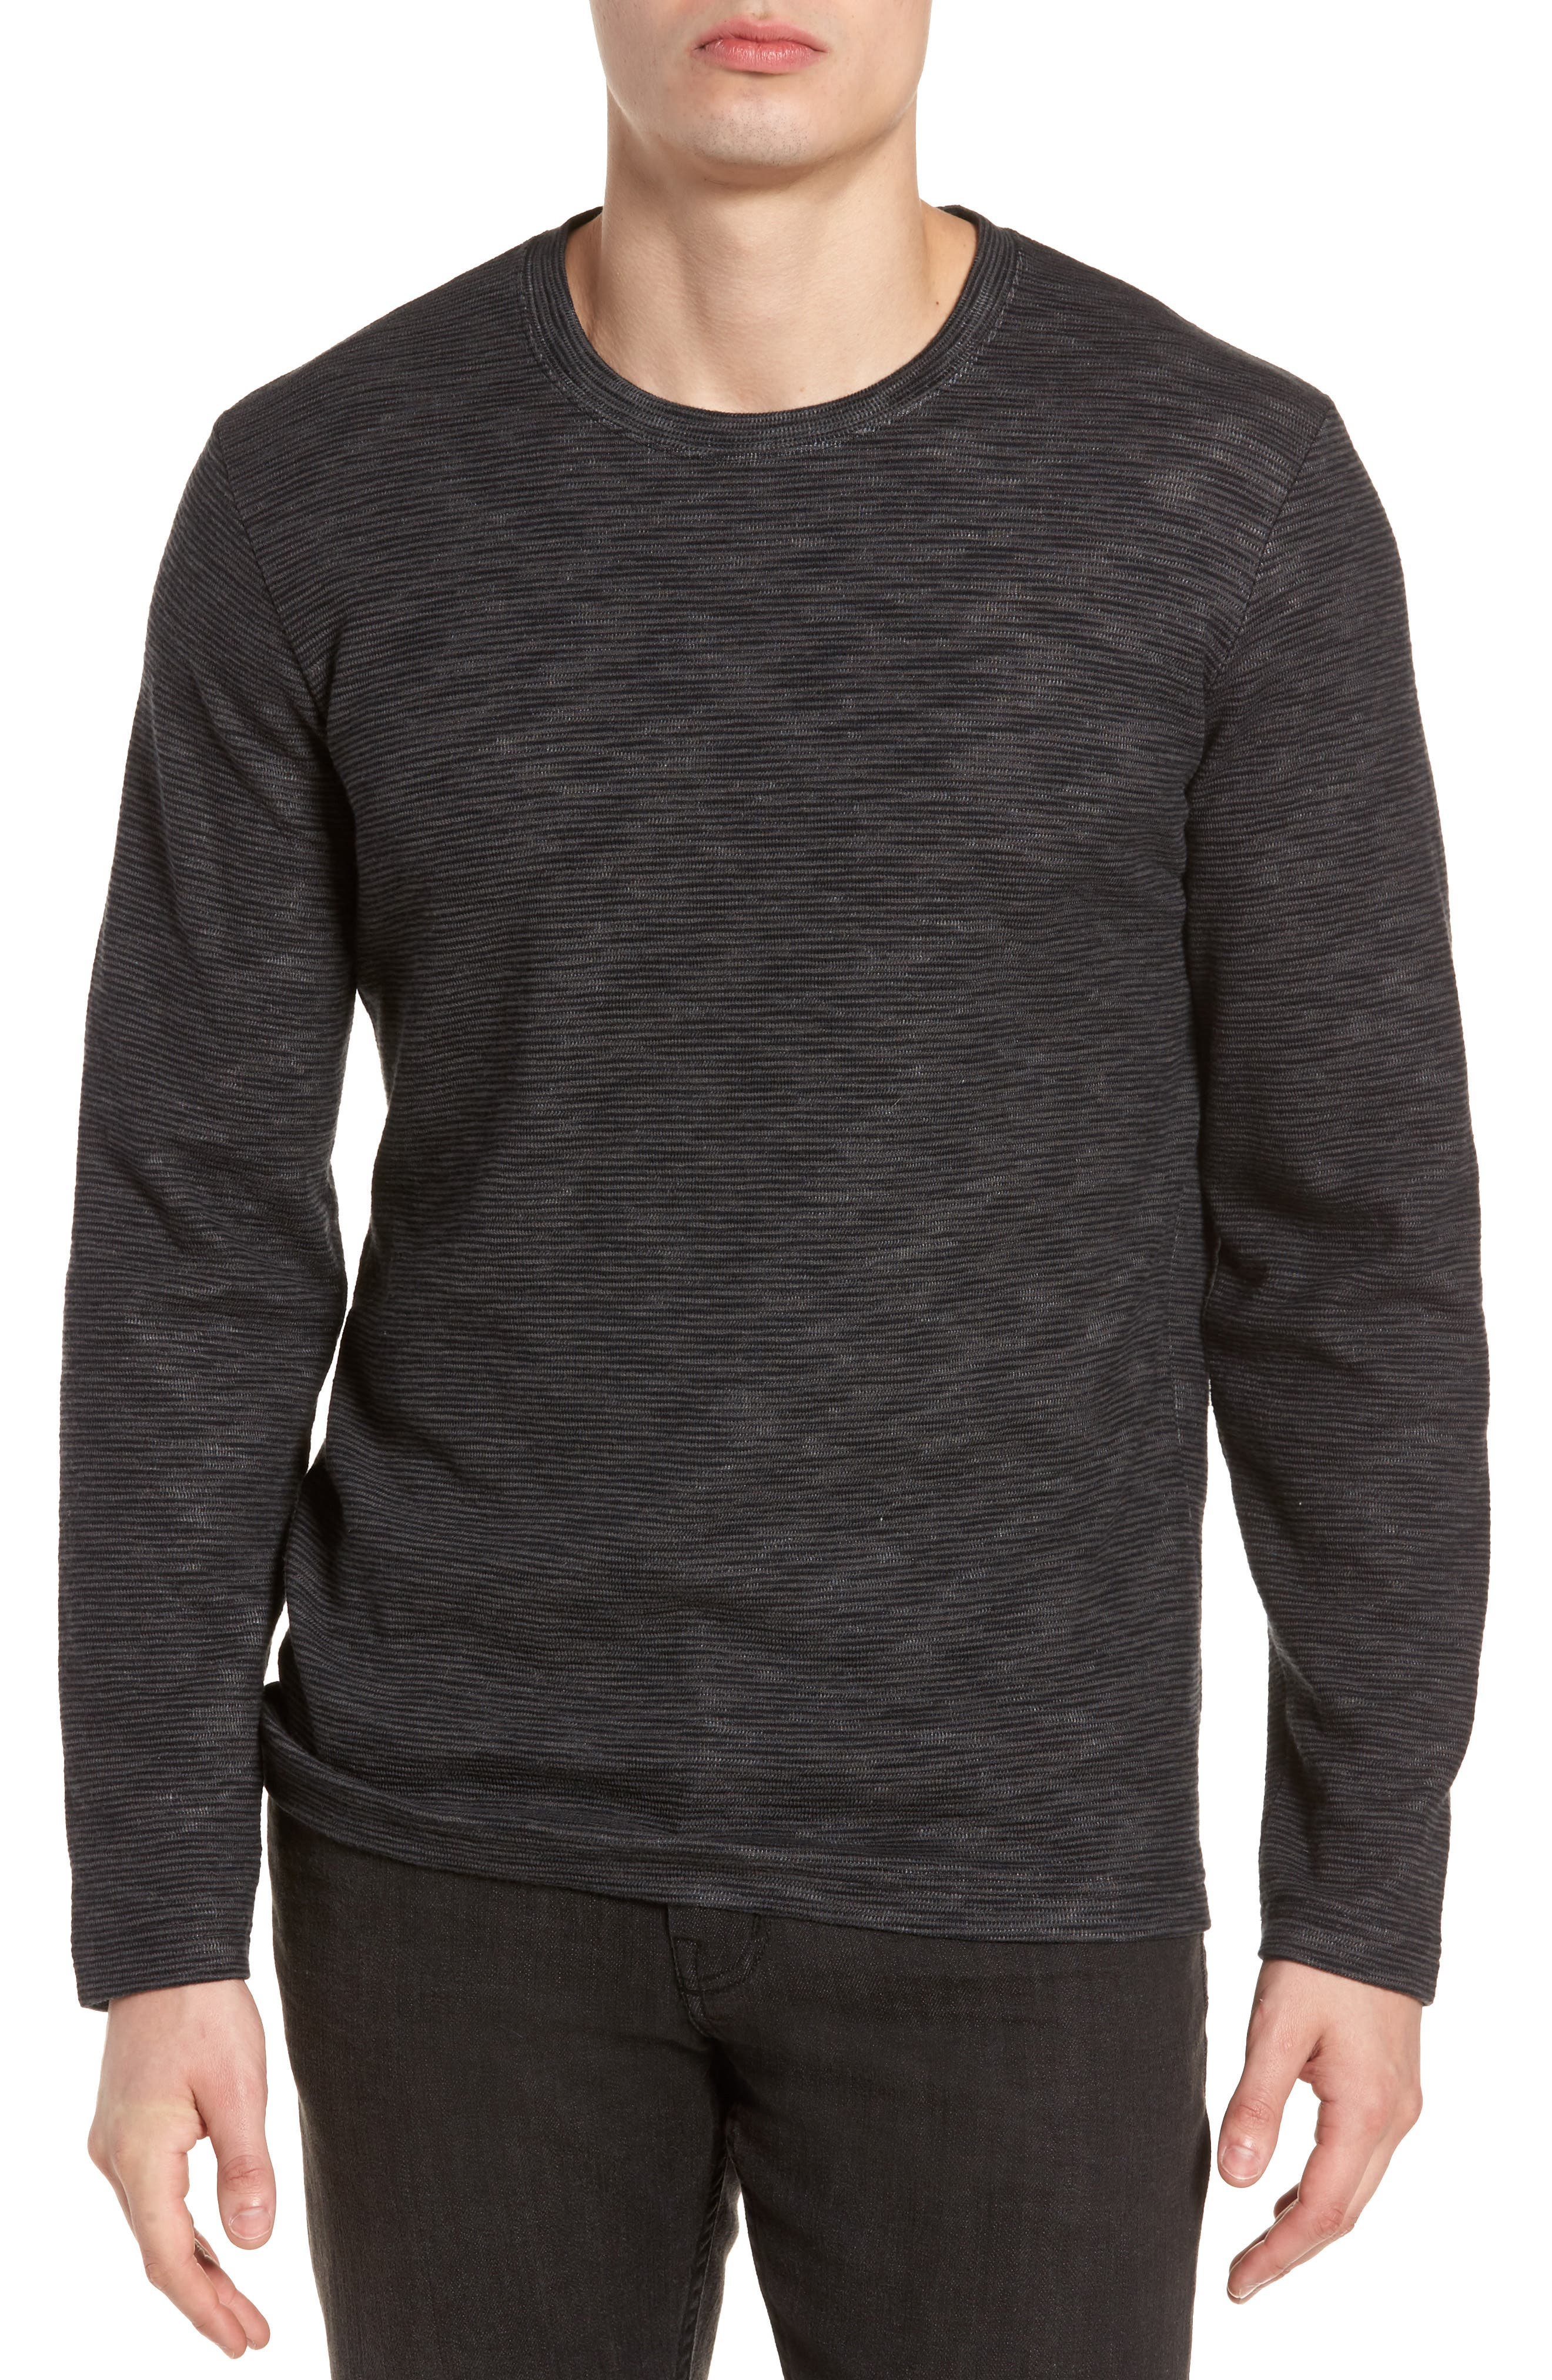 Digs Pullover,                         Main,                         color, 001